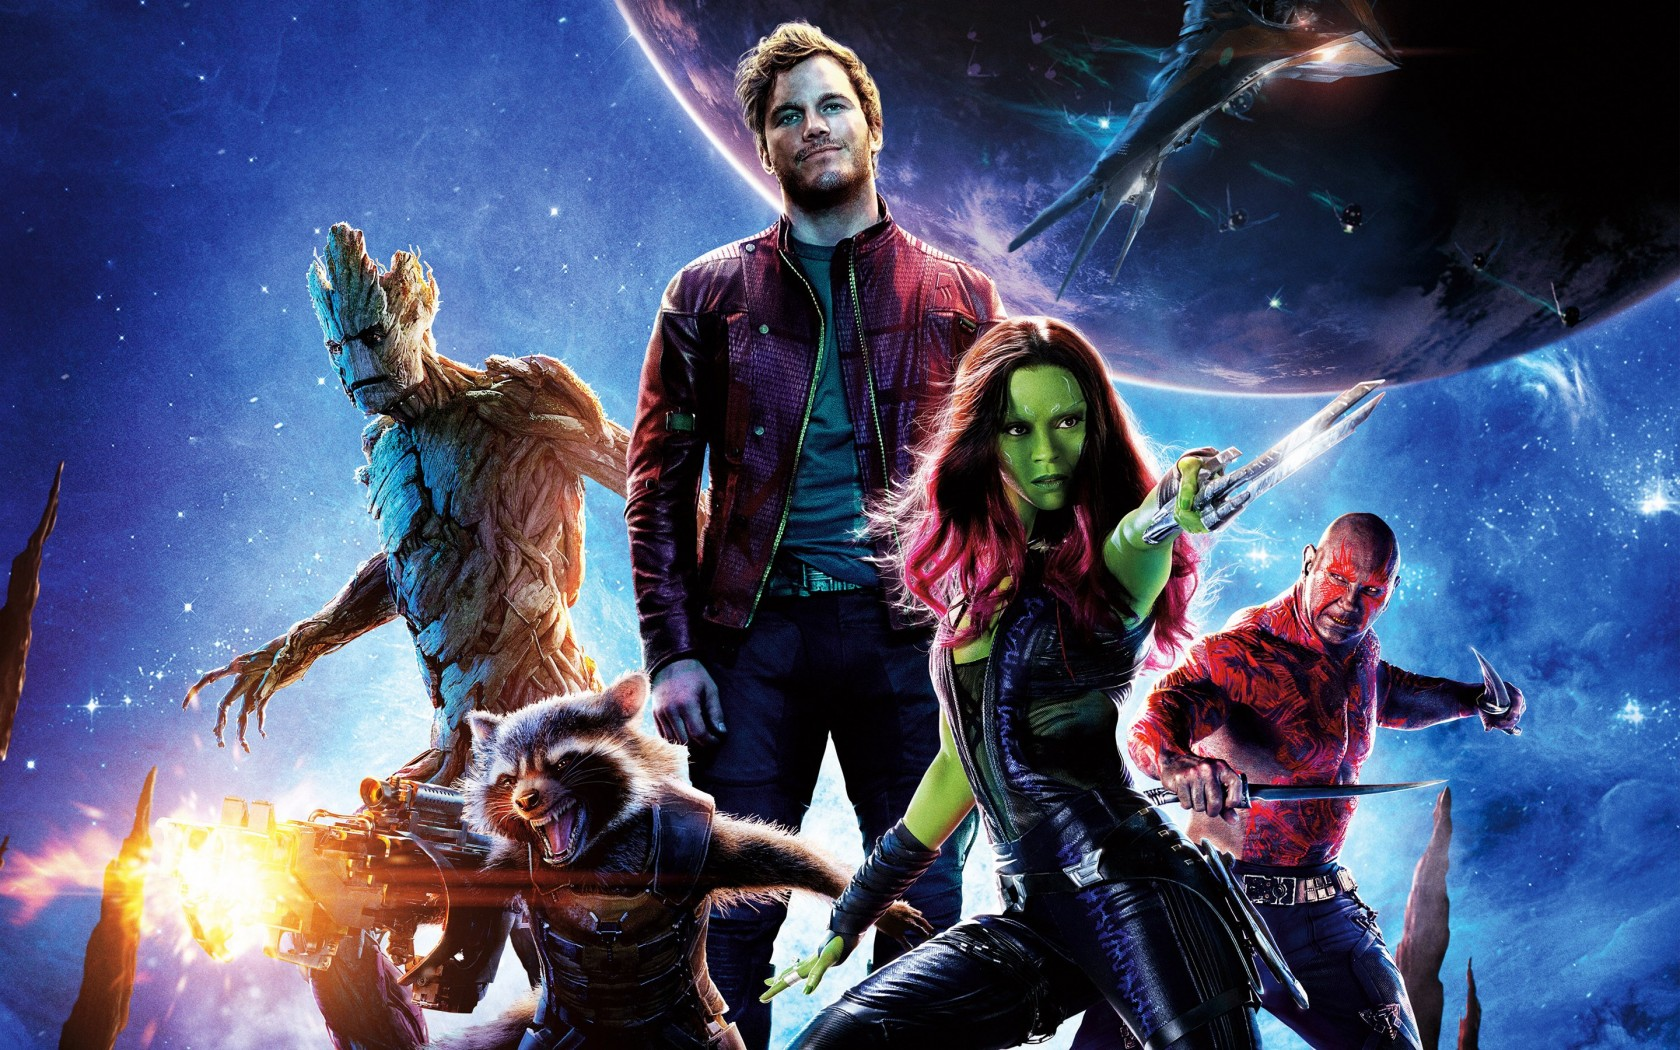 Guardians of the Galaxy Wallpaper for Desktop 1680x1050